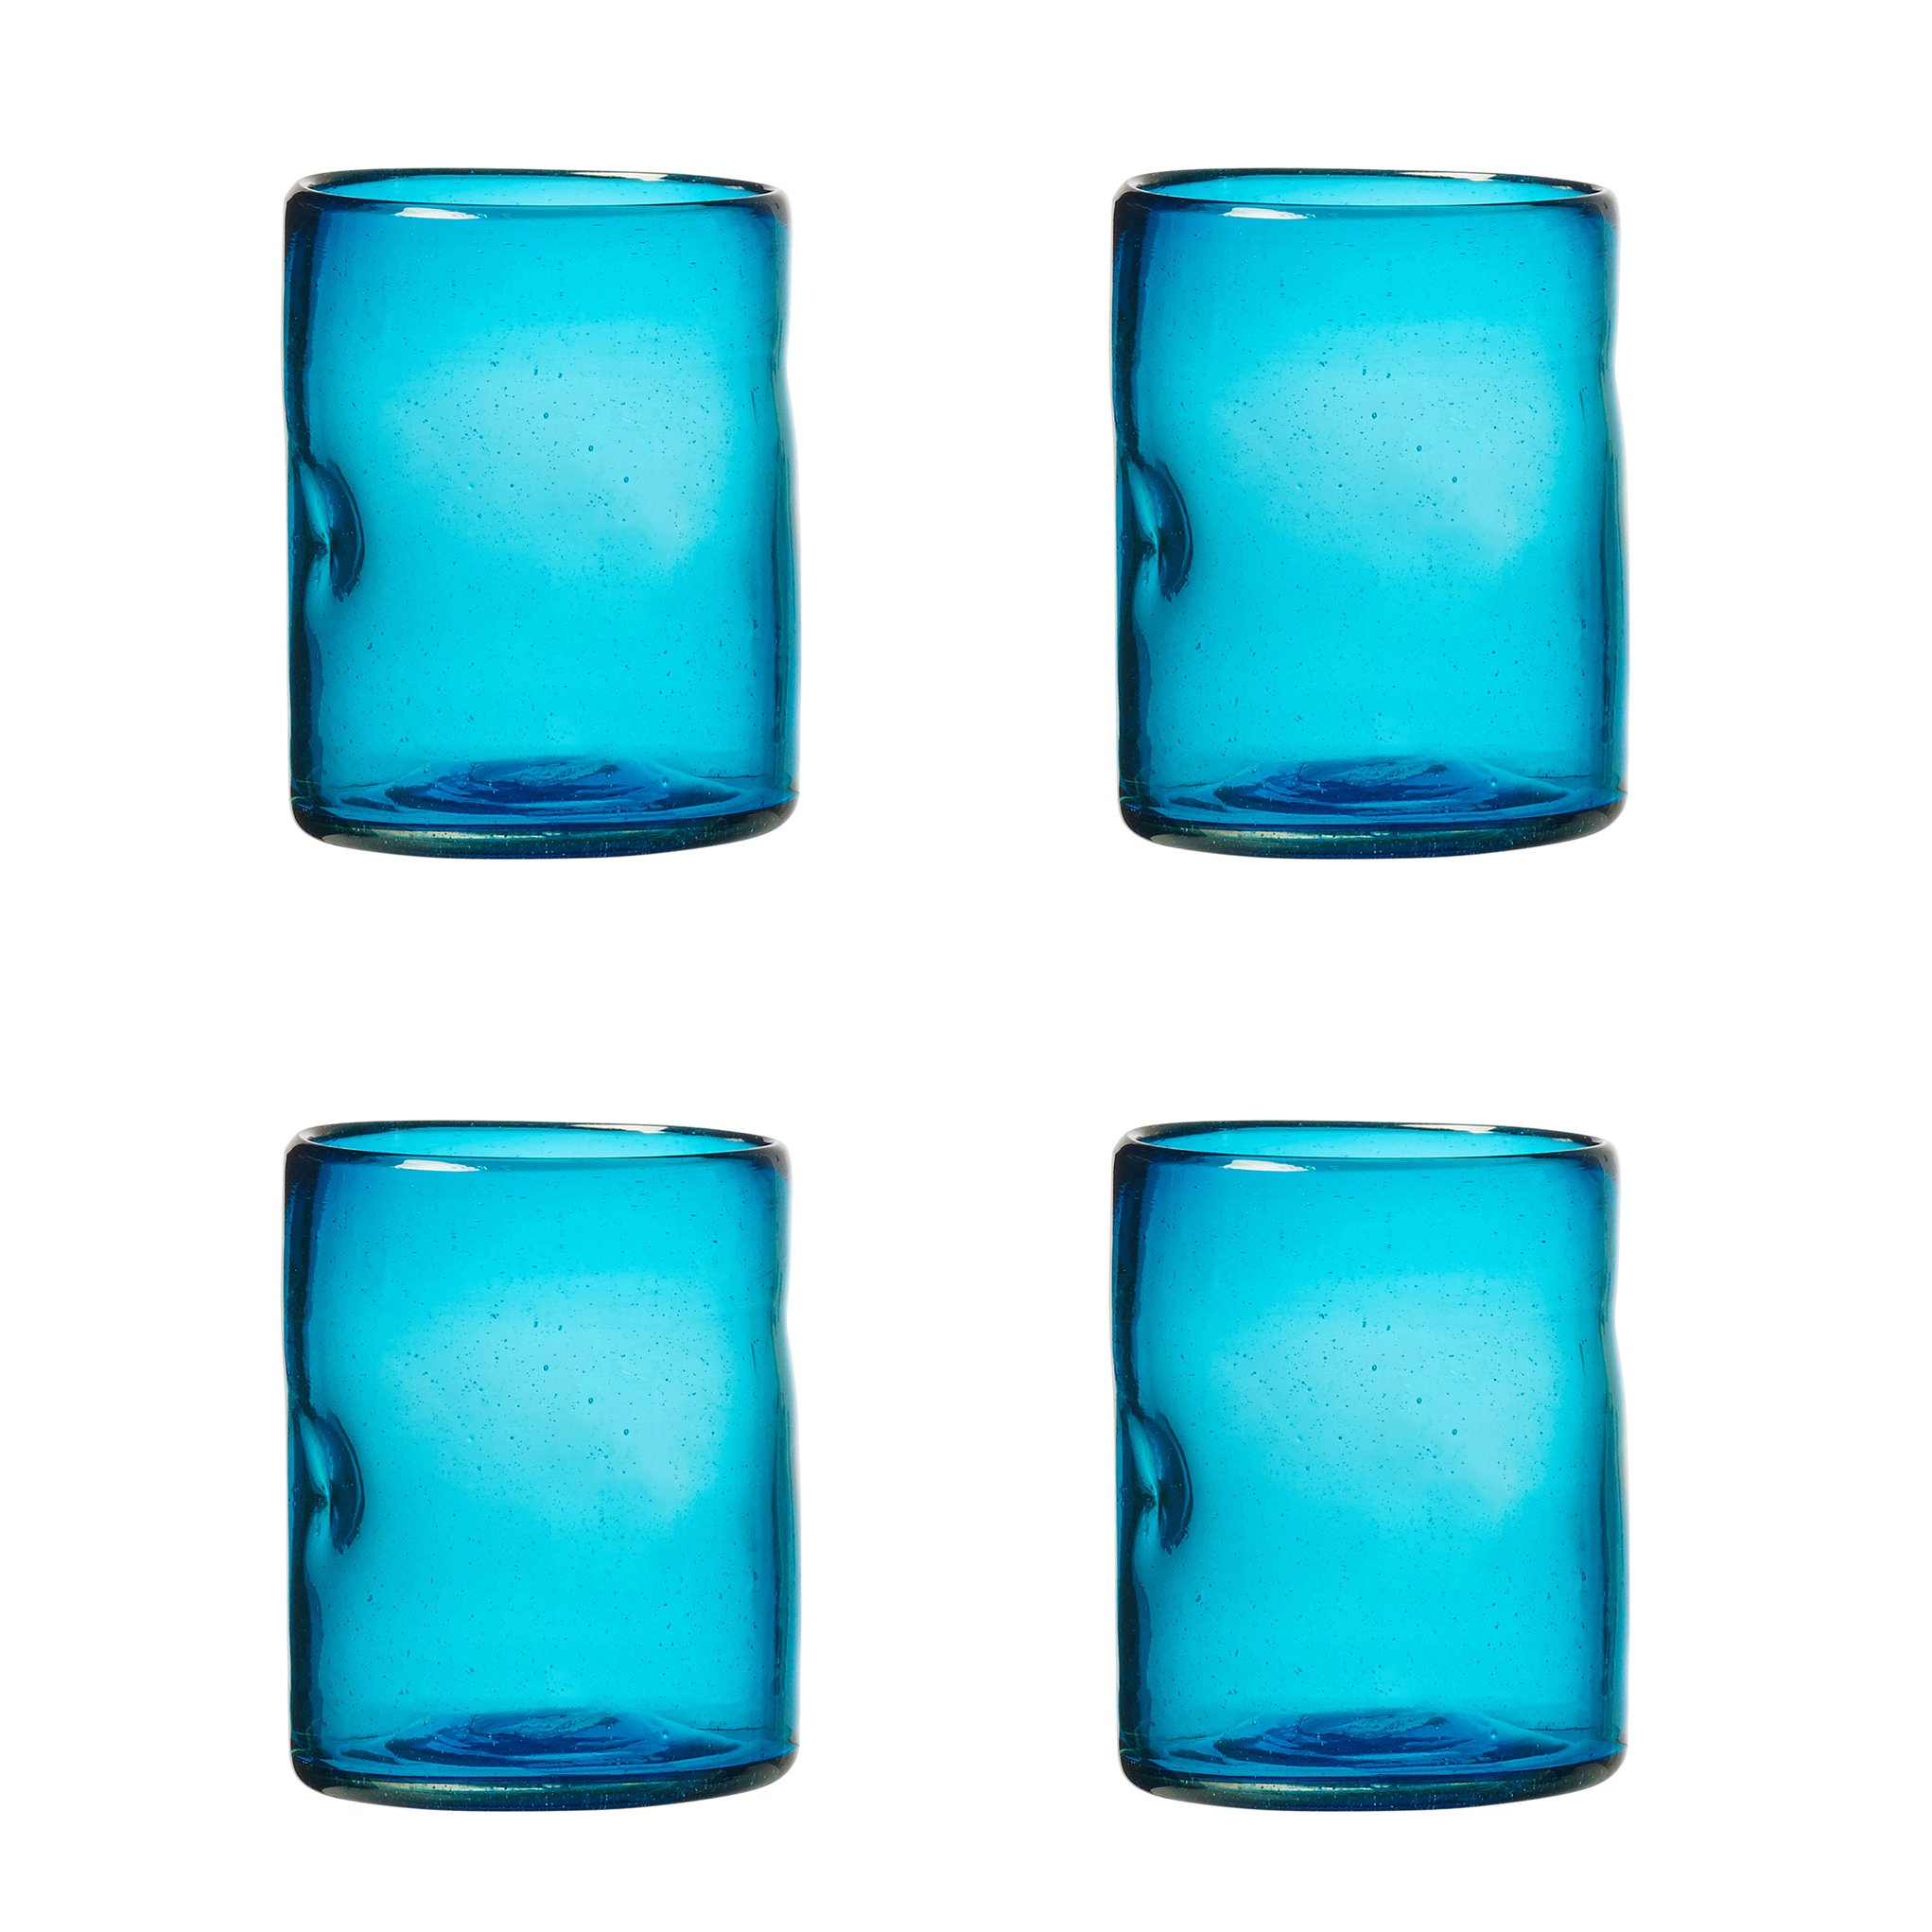 Amici Home, A7MCR065S4R, Ensenada Collection Double Old Fashioned Drinking Glass, Mexican Artisan Handmade Glassware, Recycled Glass, Dishwasher Safe, Aqua, Set of 4, 12 Ounces